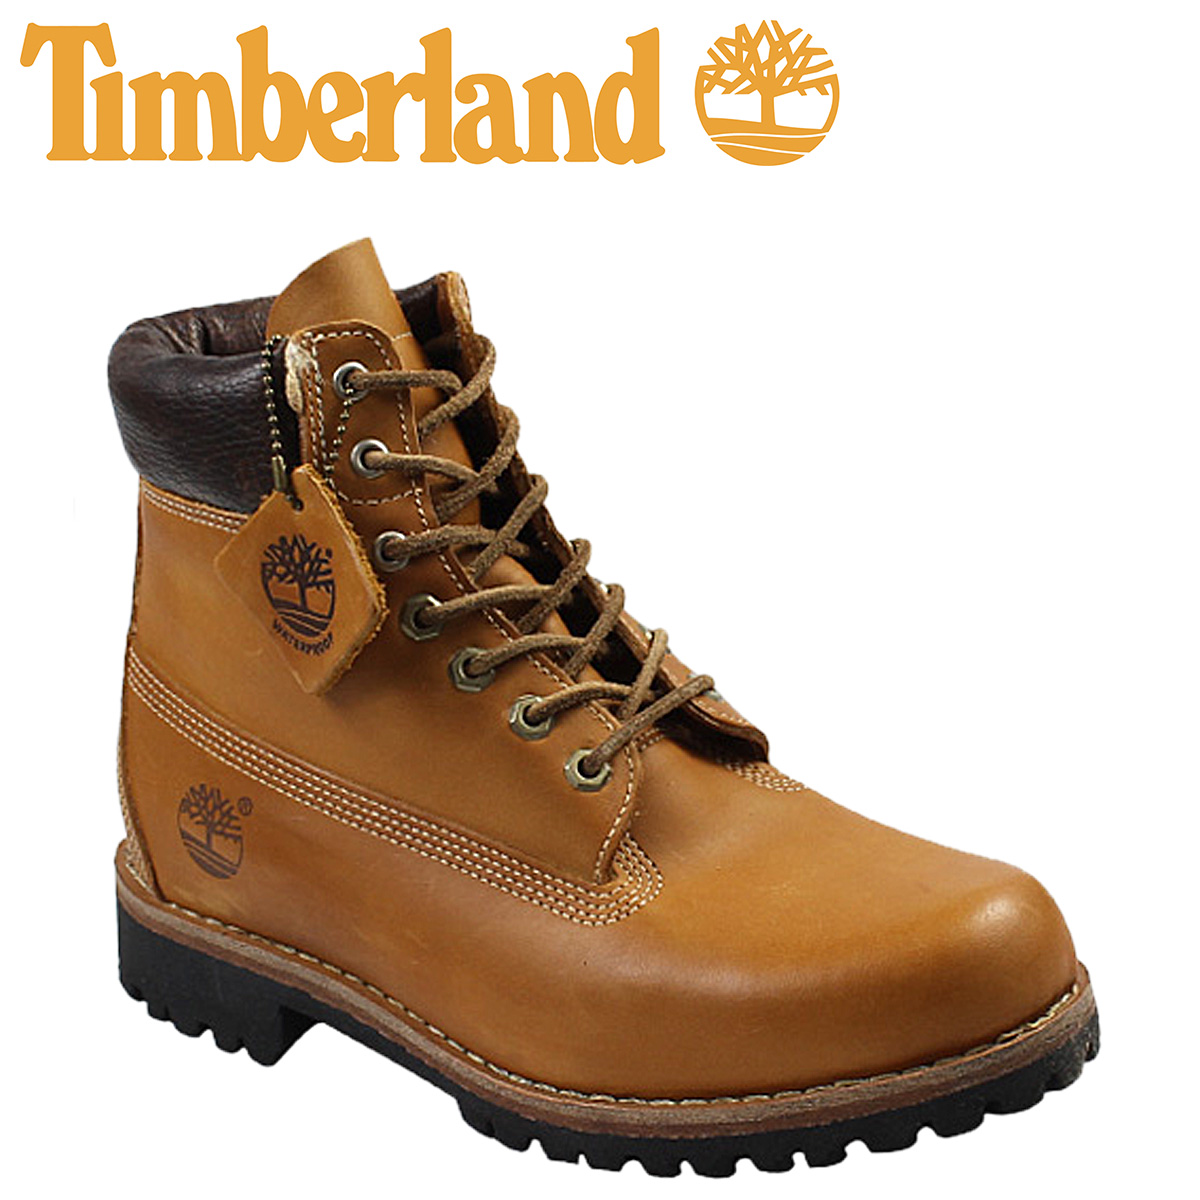 Timberland Earthkeepers Heritage Rugged Eltidy Boots Wheat Ltd Boot Leather Men S 5901r 4 3 New In Stock